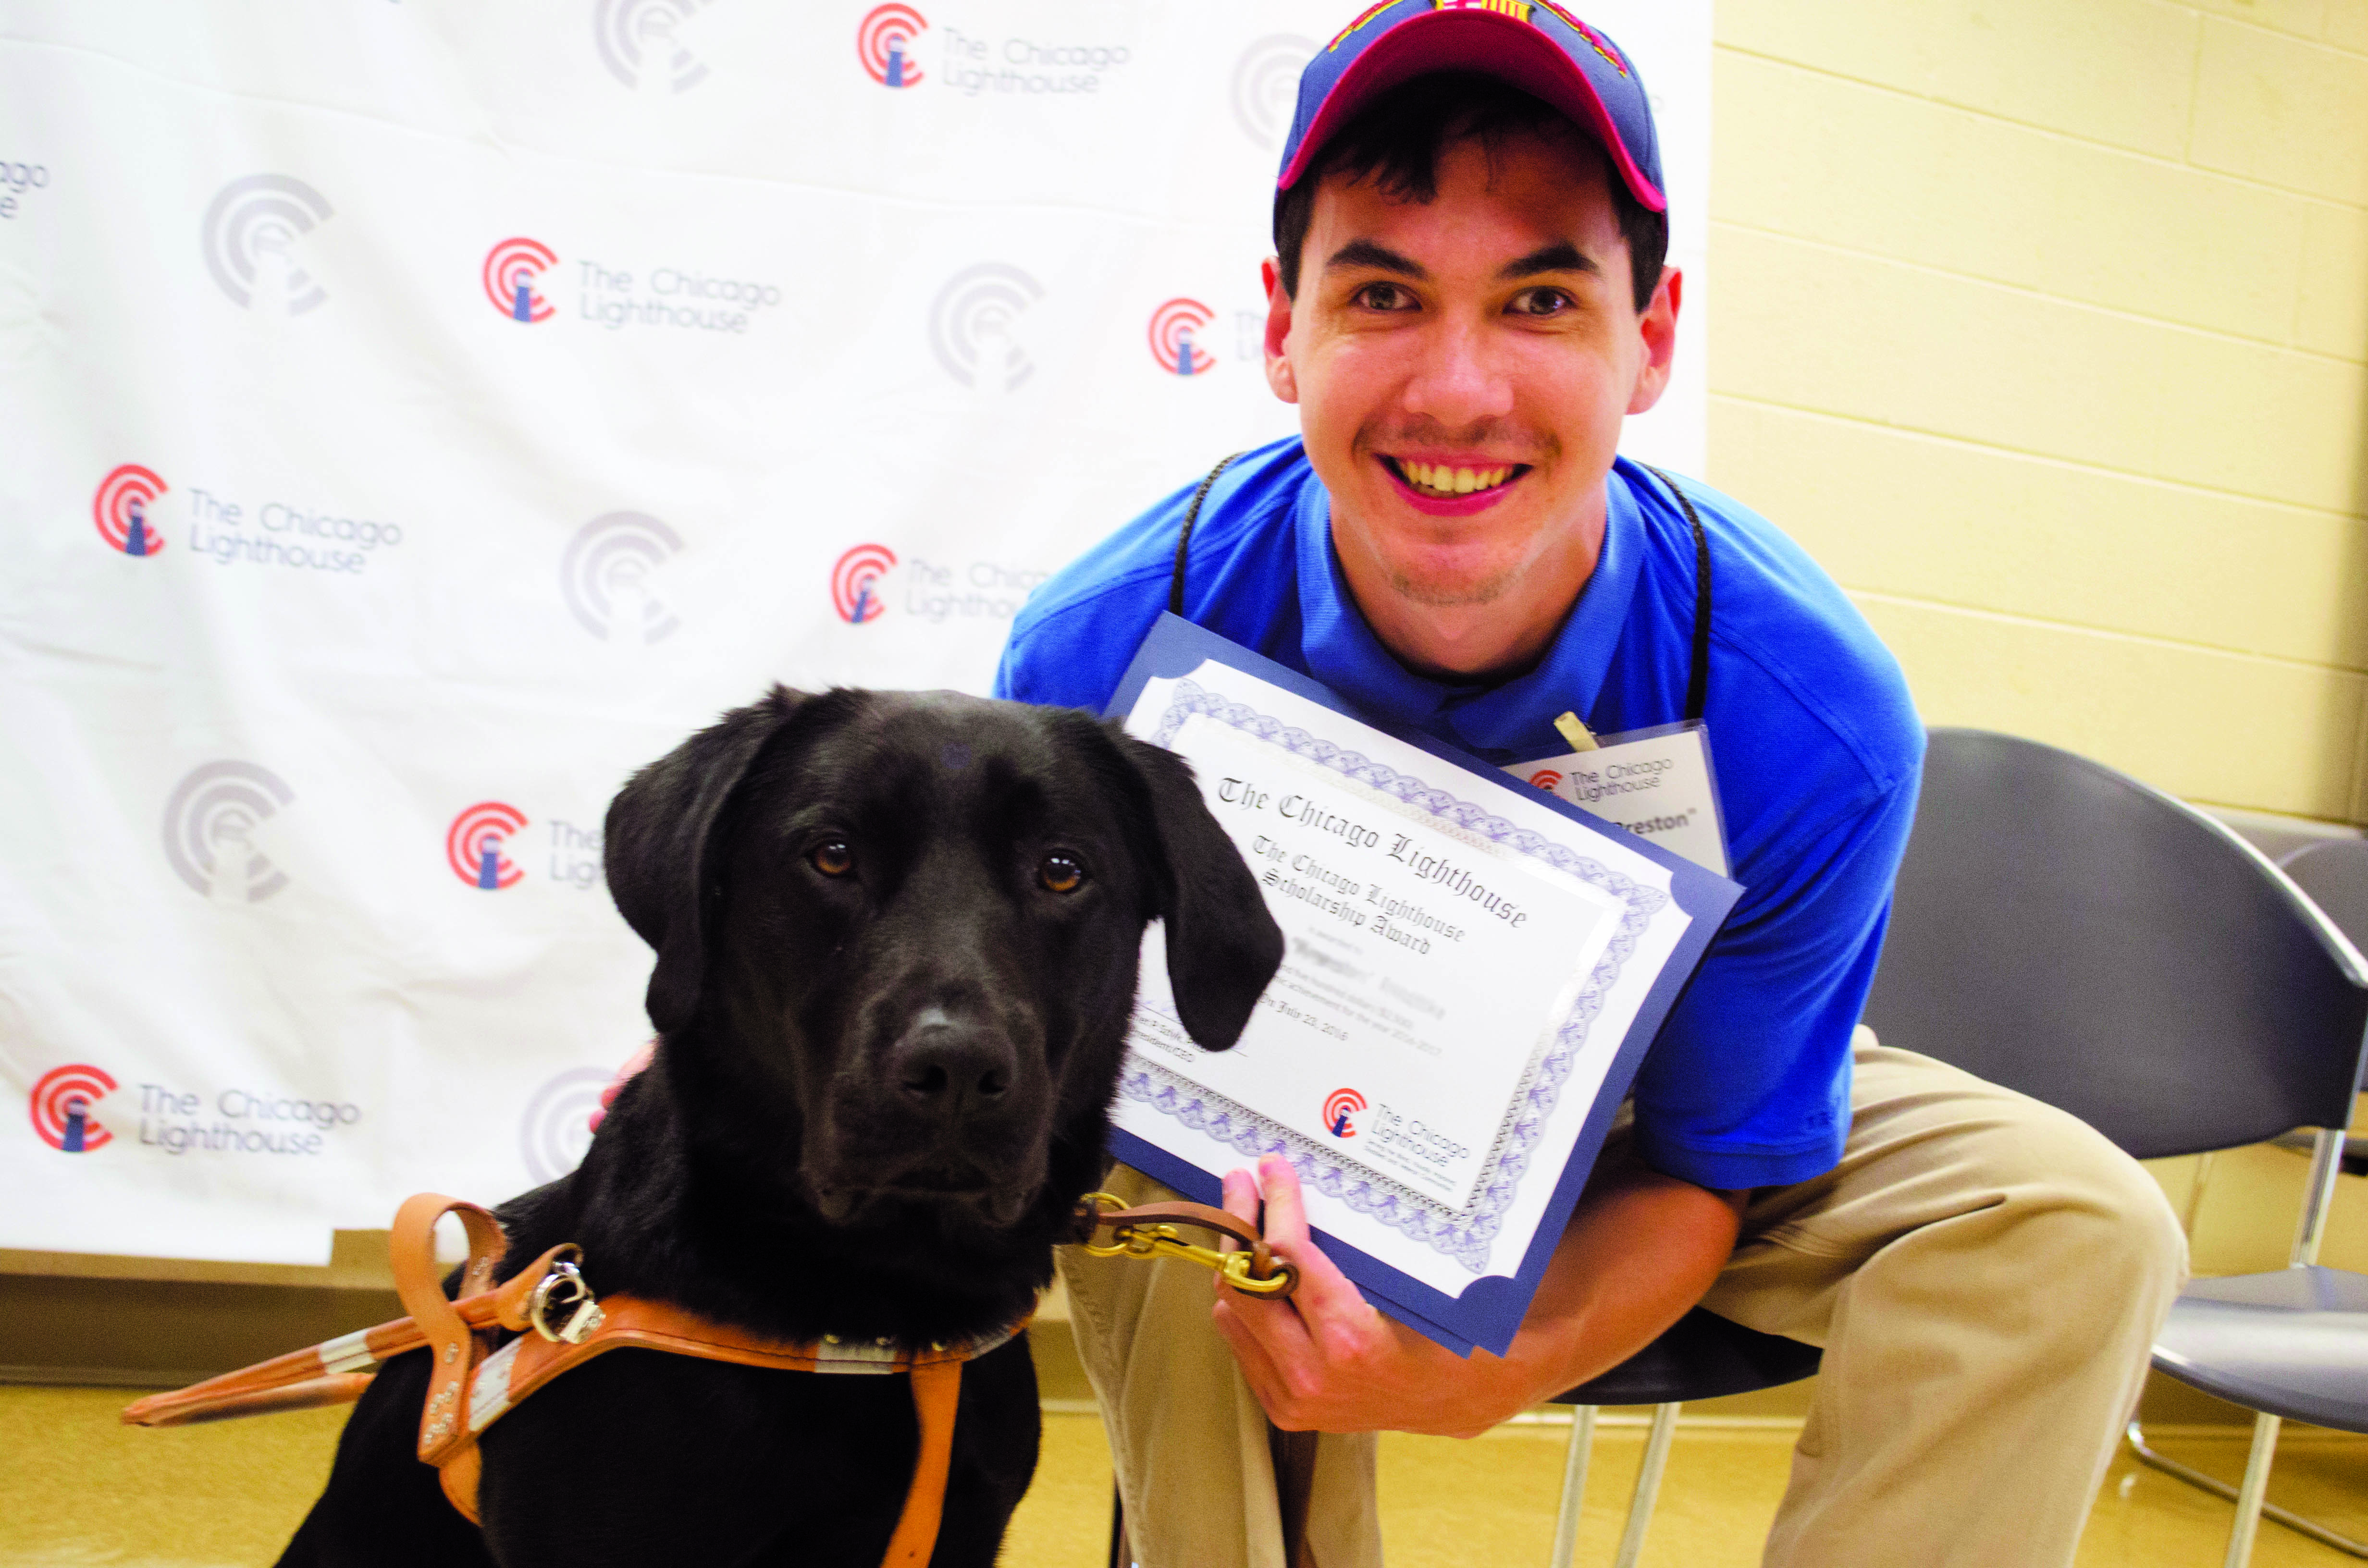 a past scholarship recipient sitting and smiling holding his award, next to his guide dog